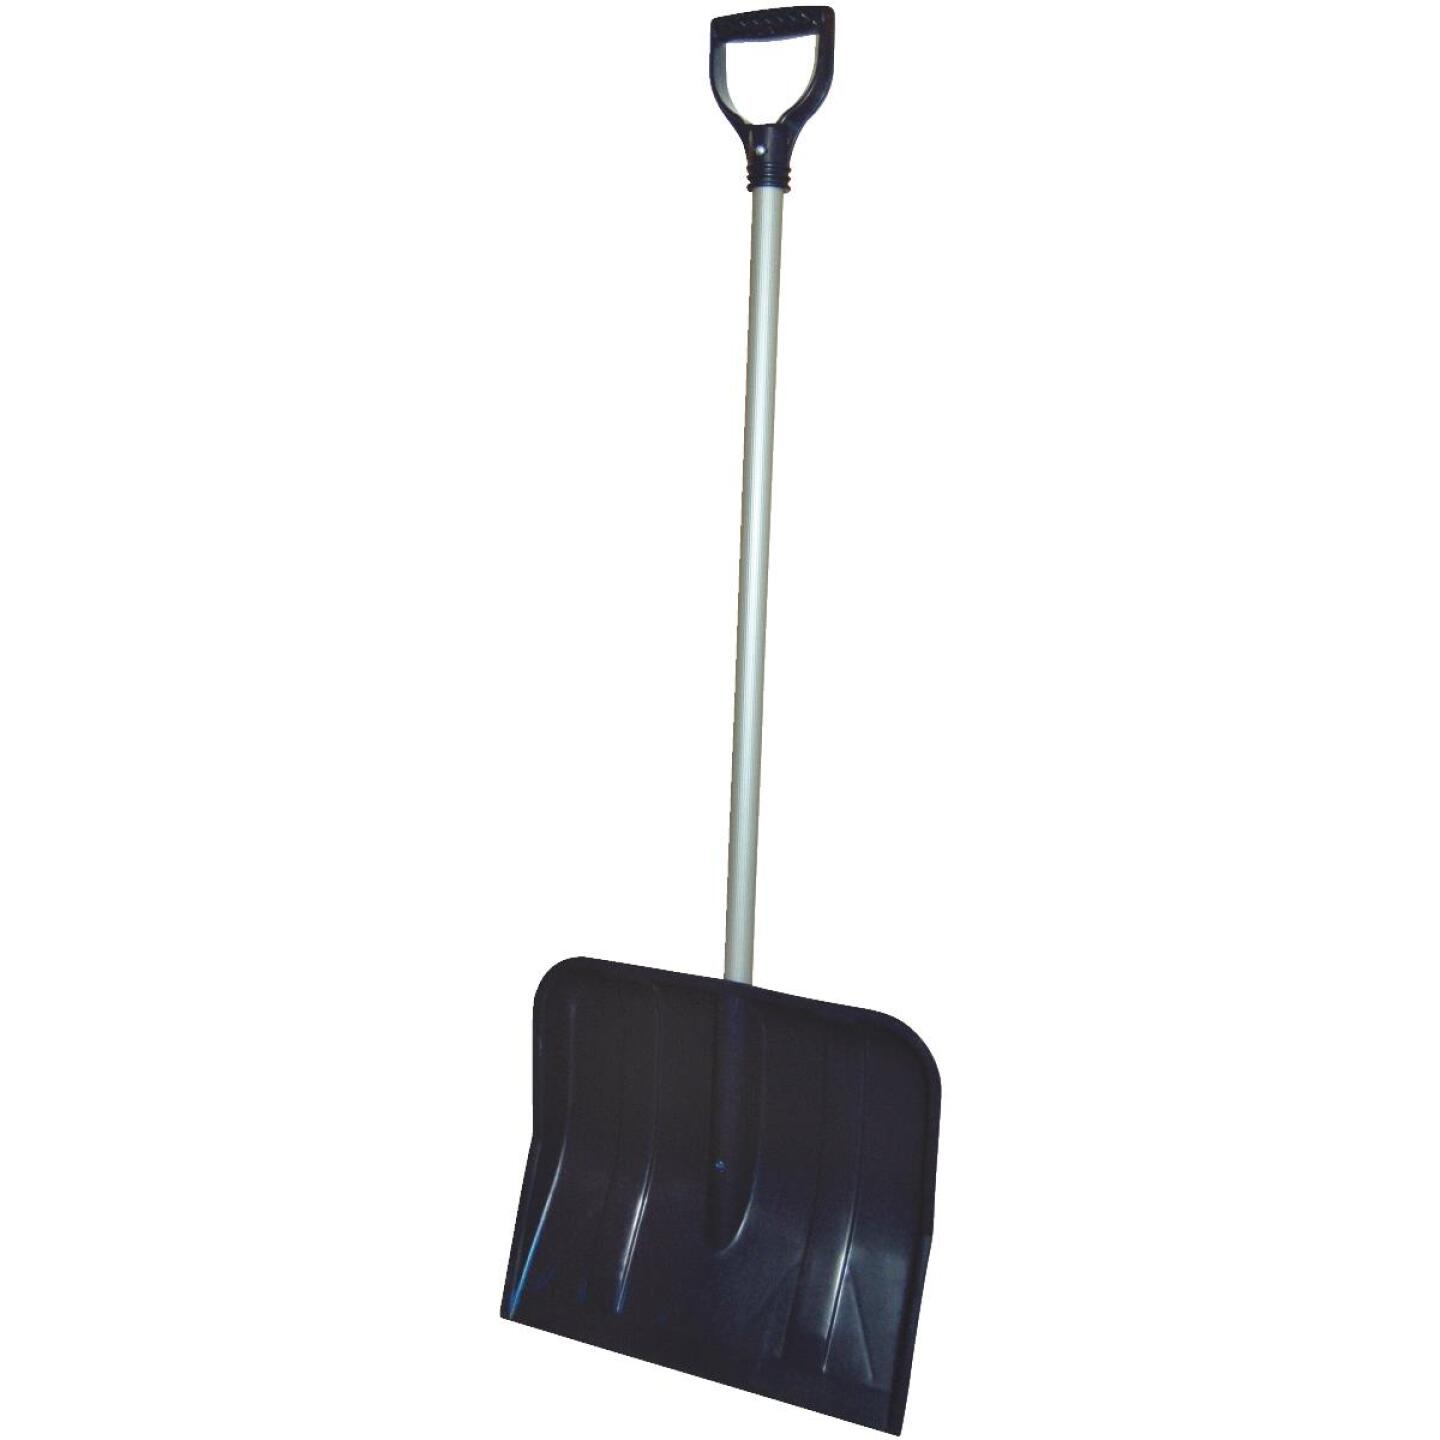 Rugg 18 In. Poly Snow Shovel with 35 In. Steel Handle Image 2